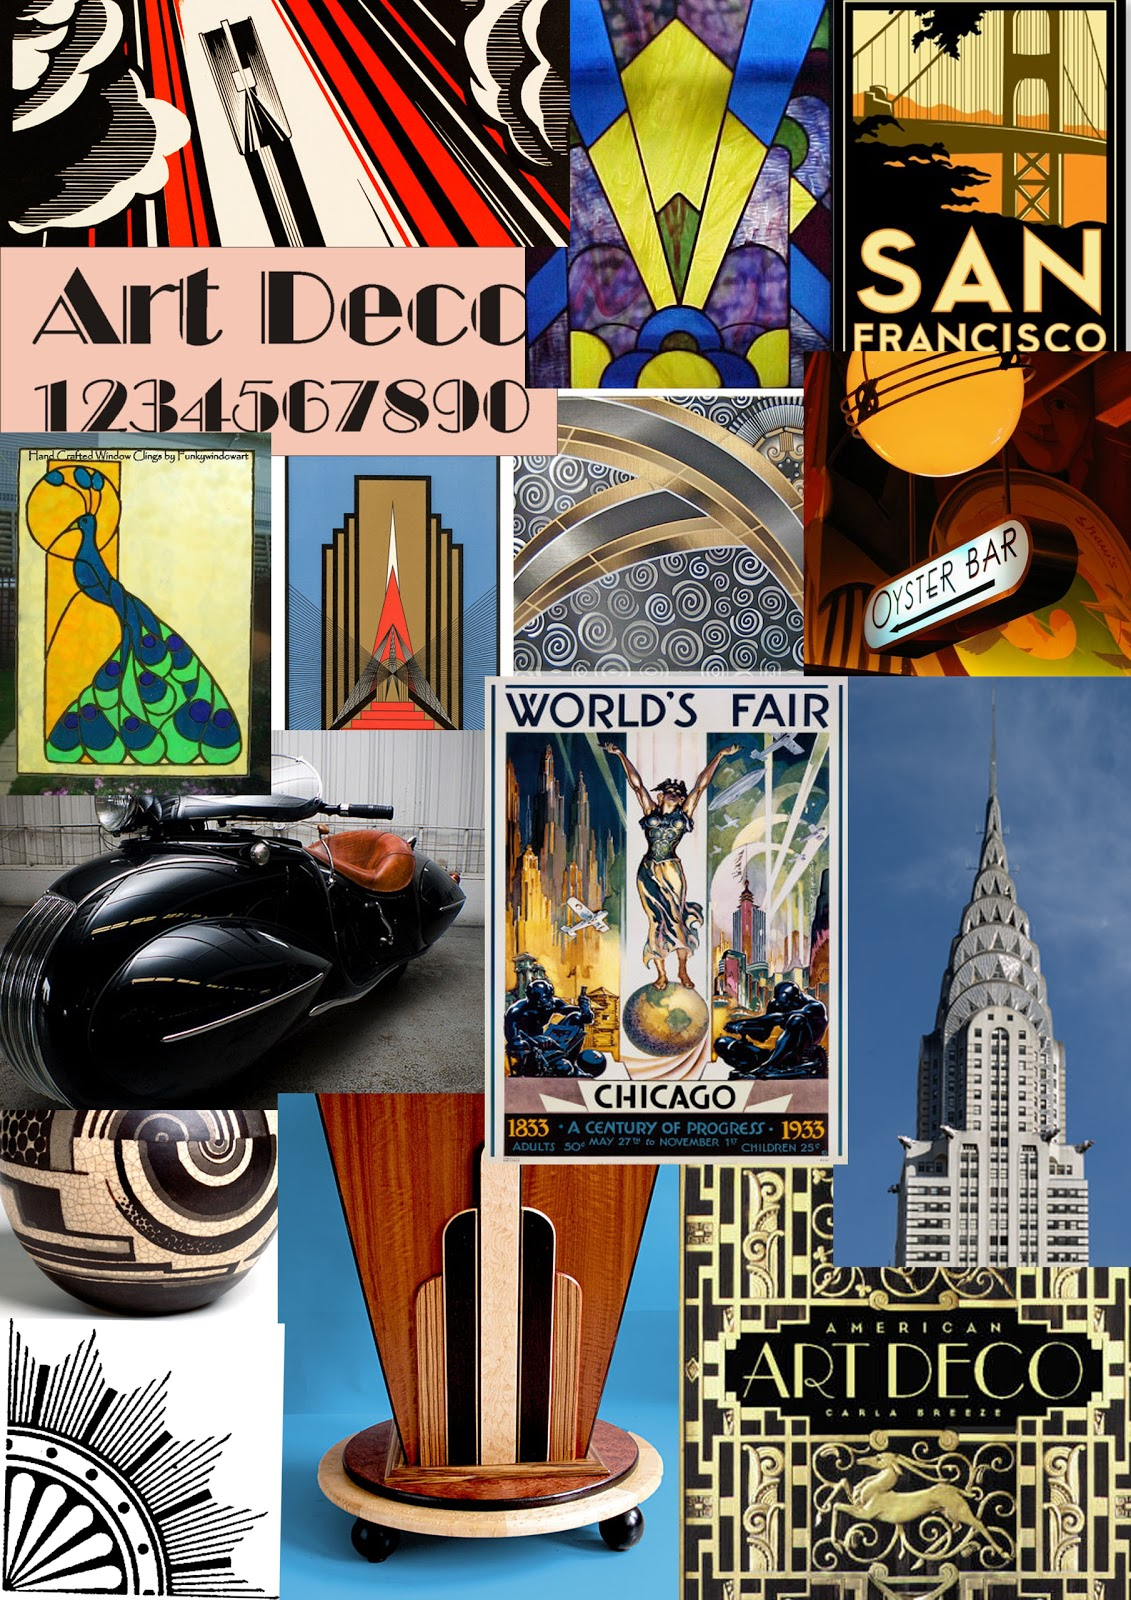 art nouveau architecture essay Art nouveau architecture essay best american essays college i would not like getting desensitized to the wonder of mountains and such by living around them daily.